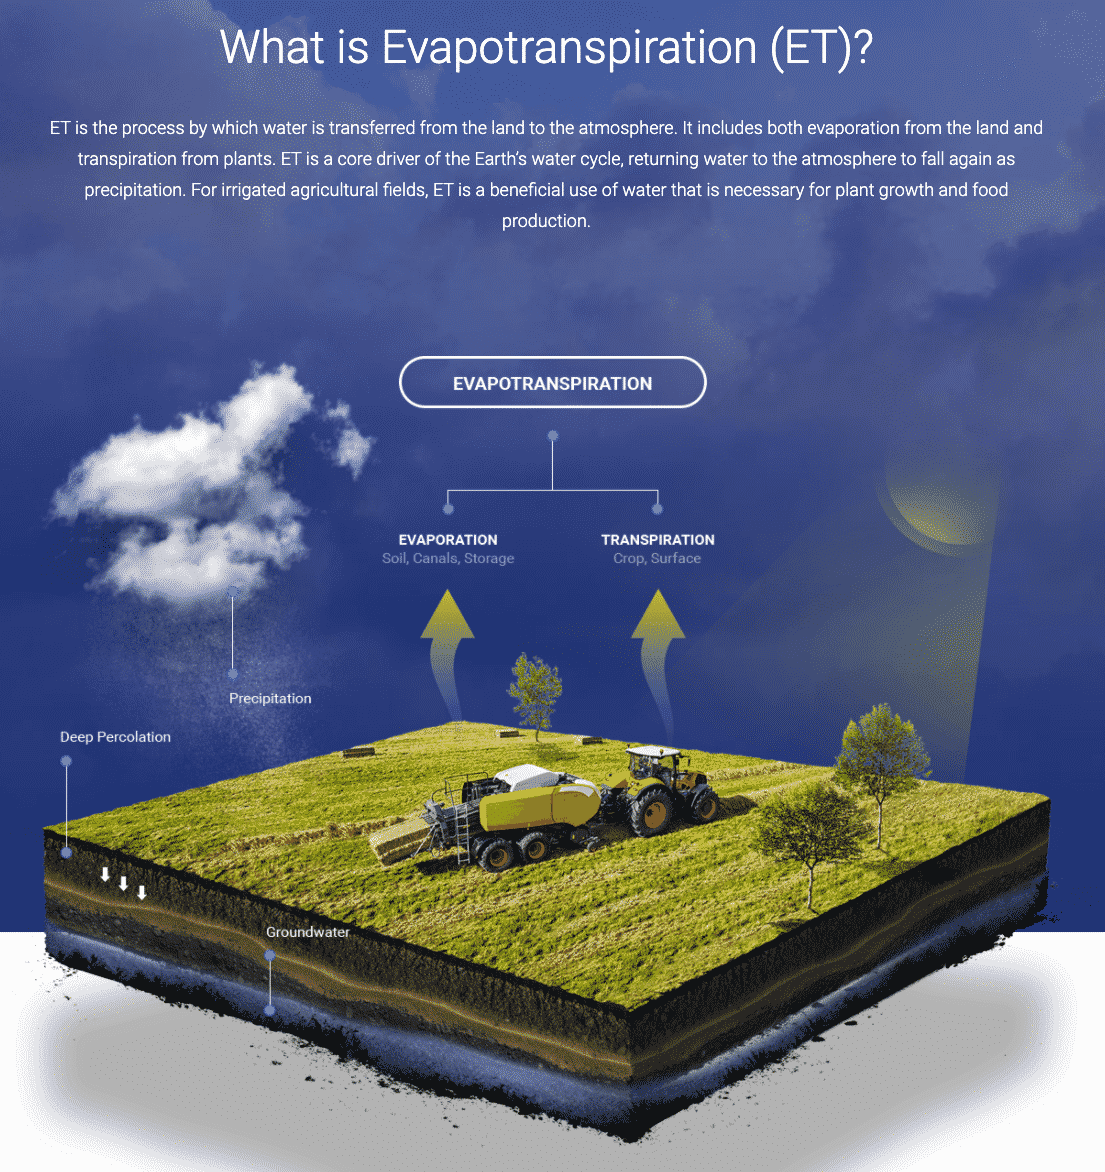 Evapotranspiration grahic